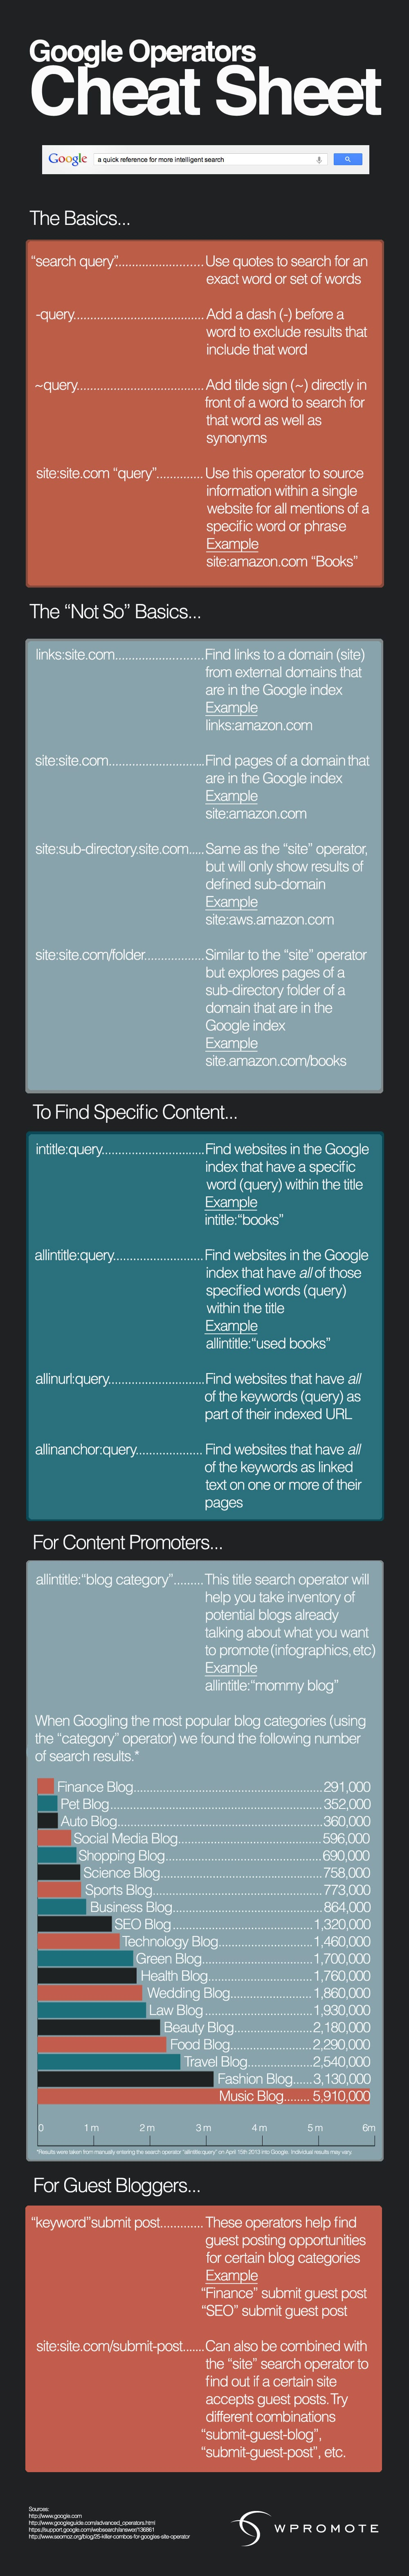 google-operators-guide-infographic